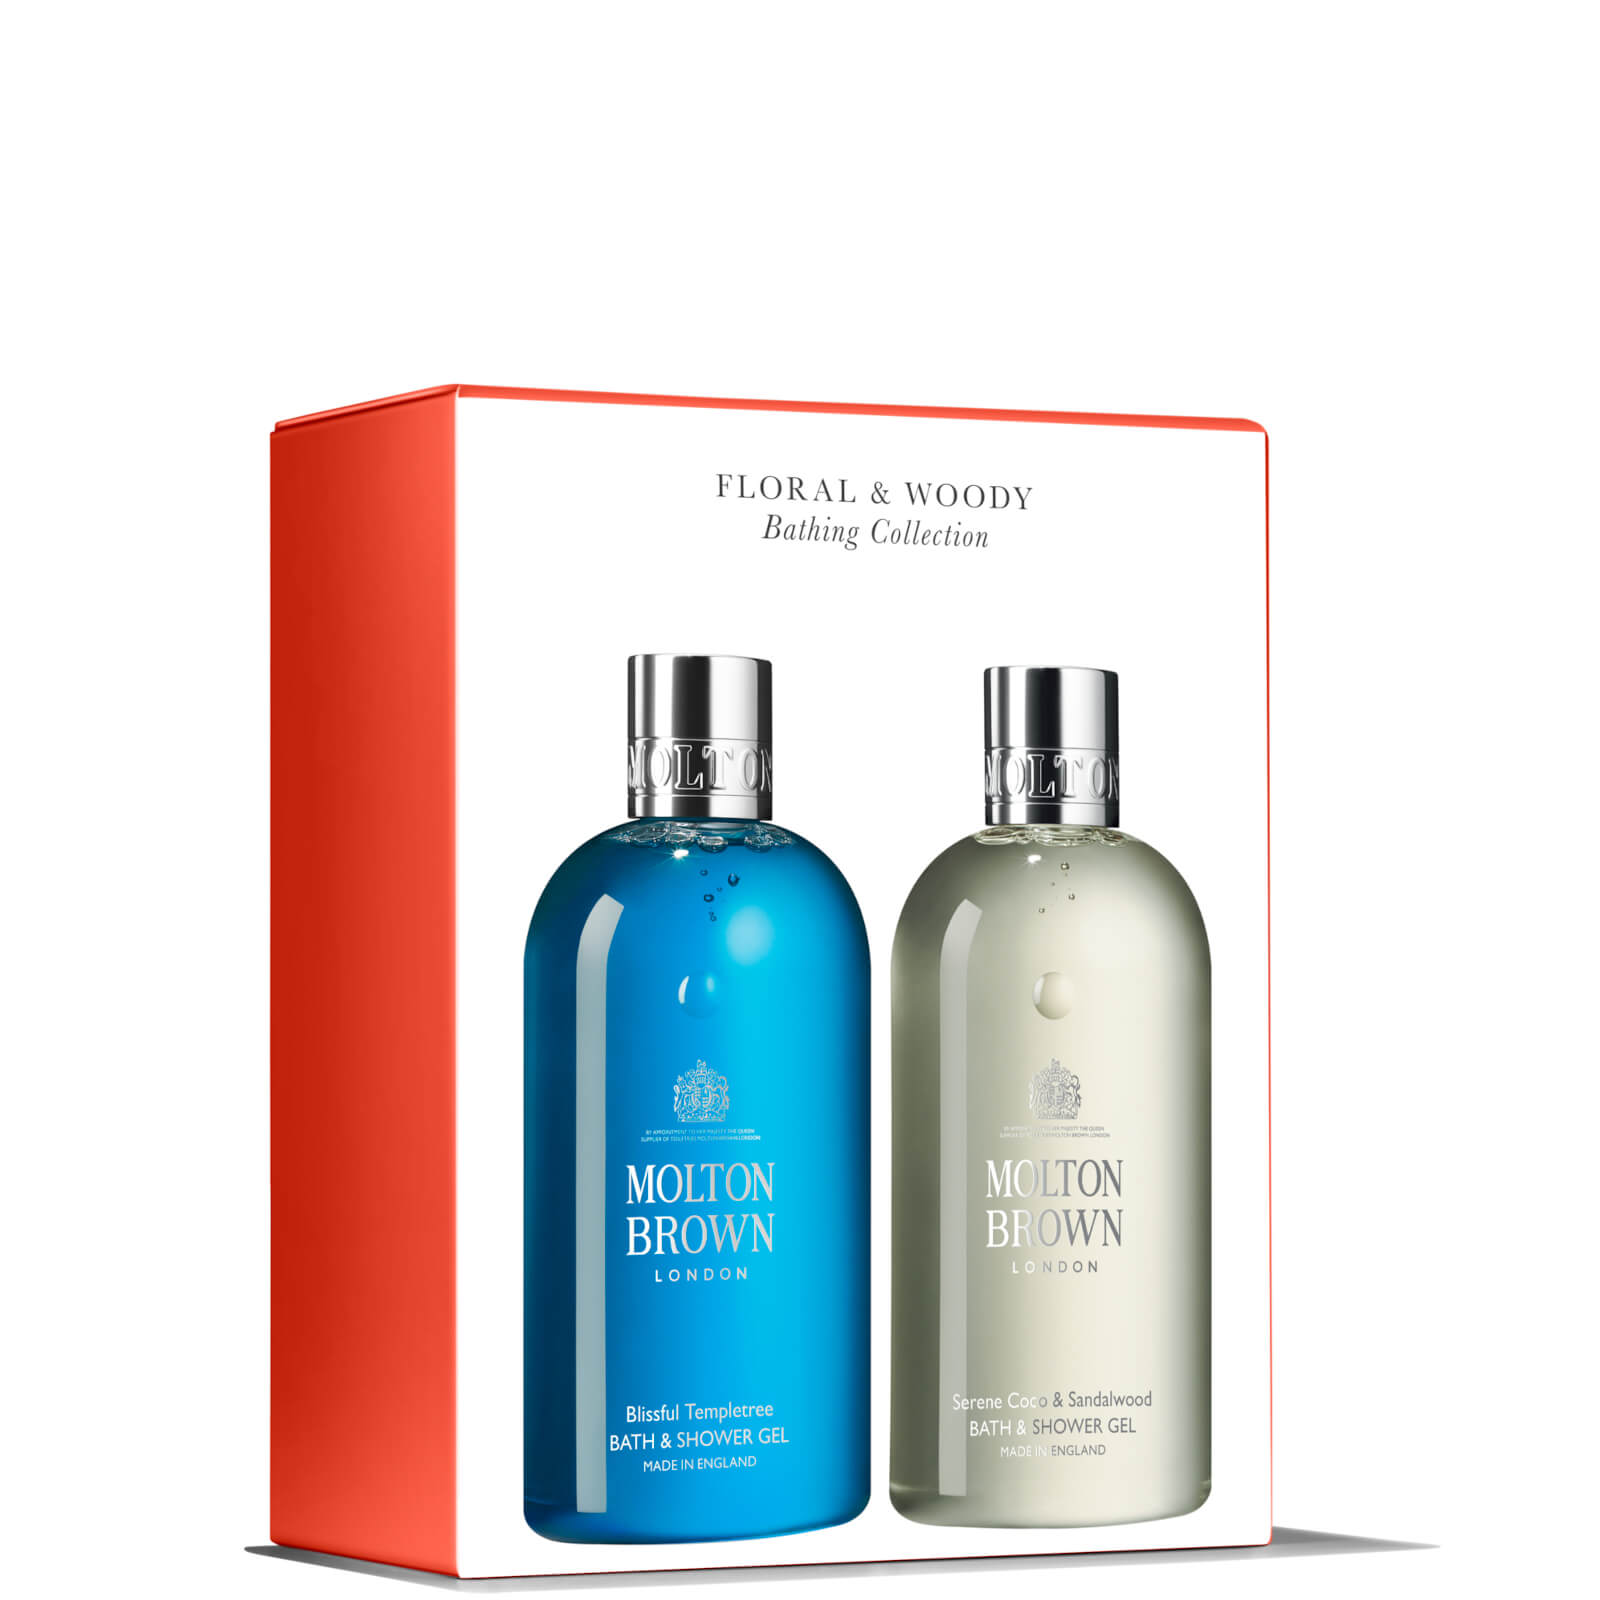 Molton Brown Floral and Woody Gift Set